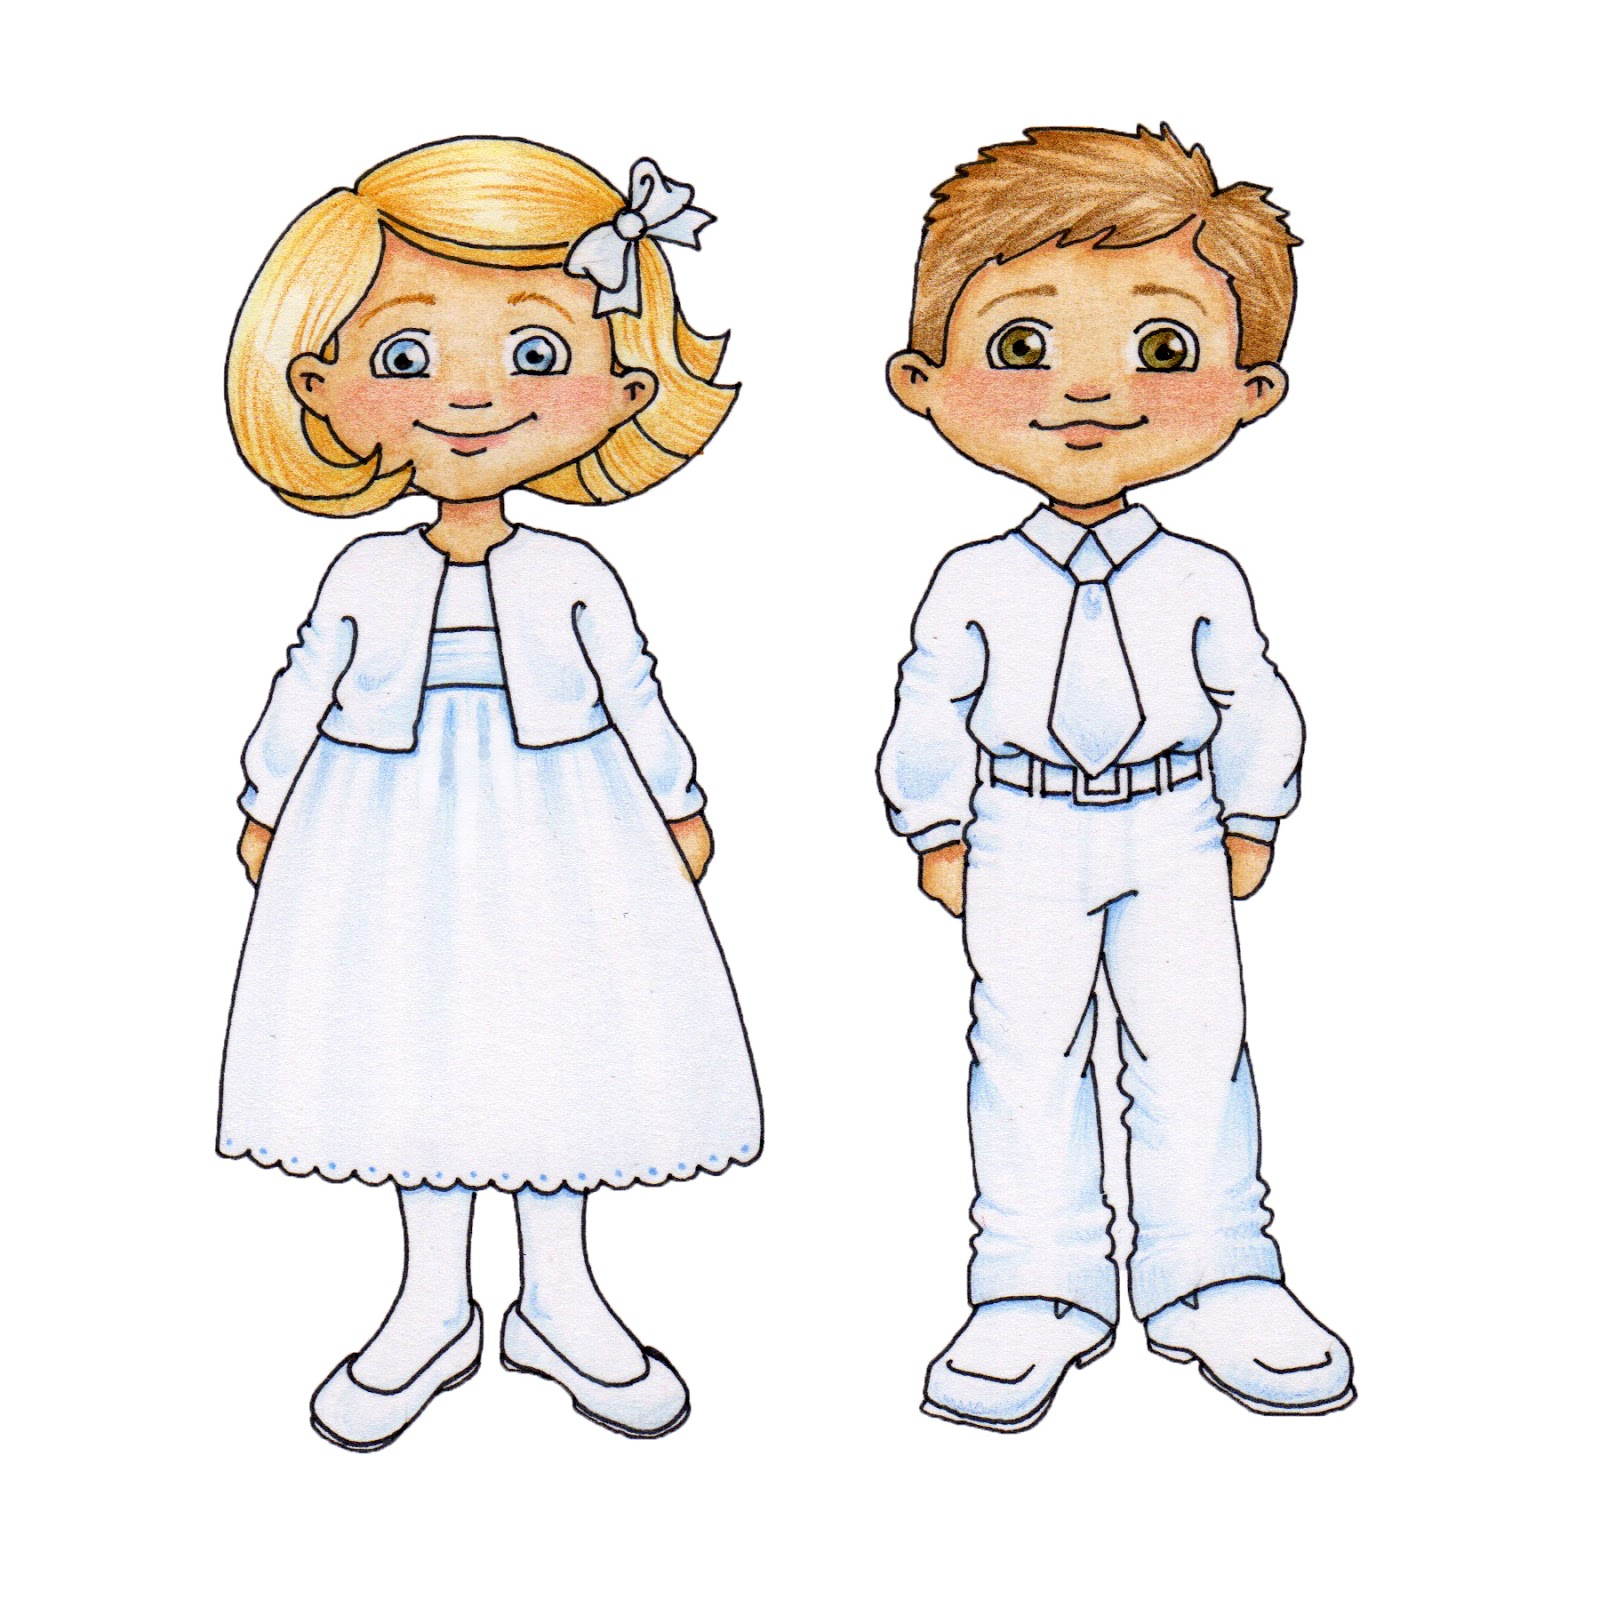 LDS Baptism Clip Art Free N5 free image.